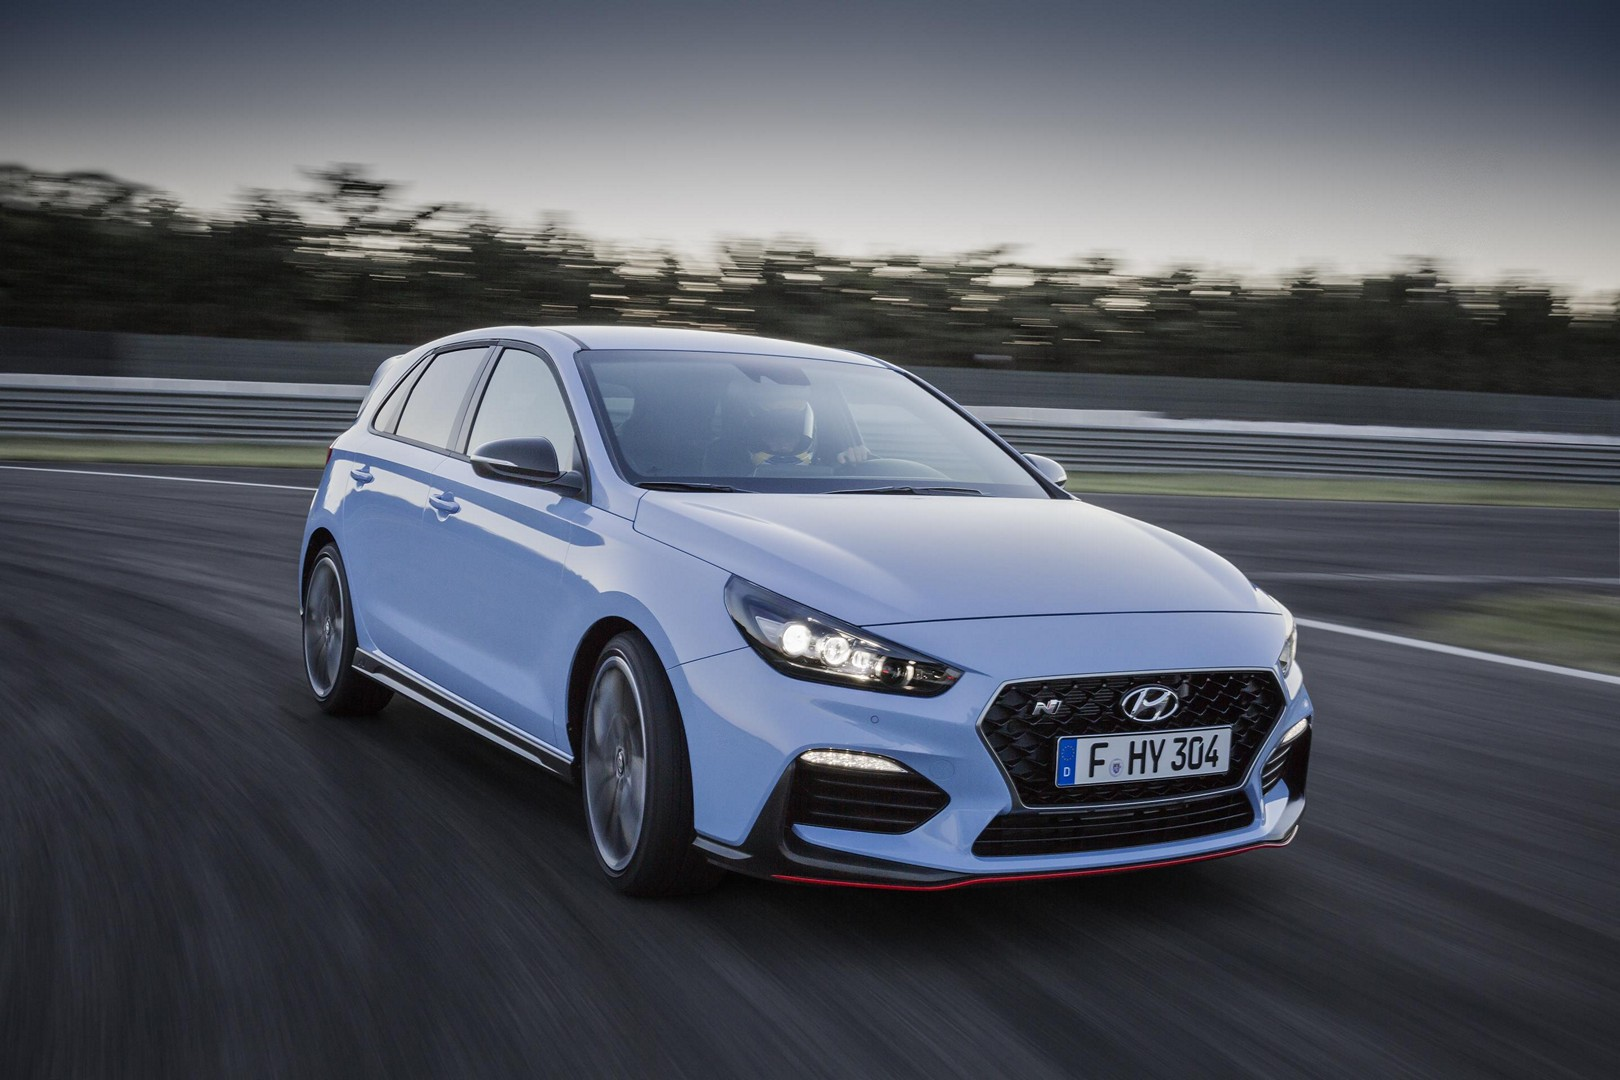 hyundai i30 n dct coming in 2019 with eight speeds. Black Bedroom Furniture Sets. Home Design Ideas